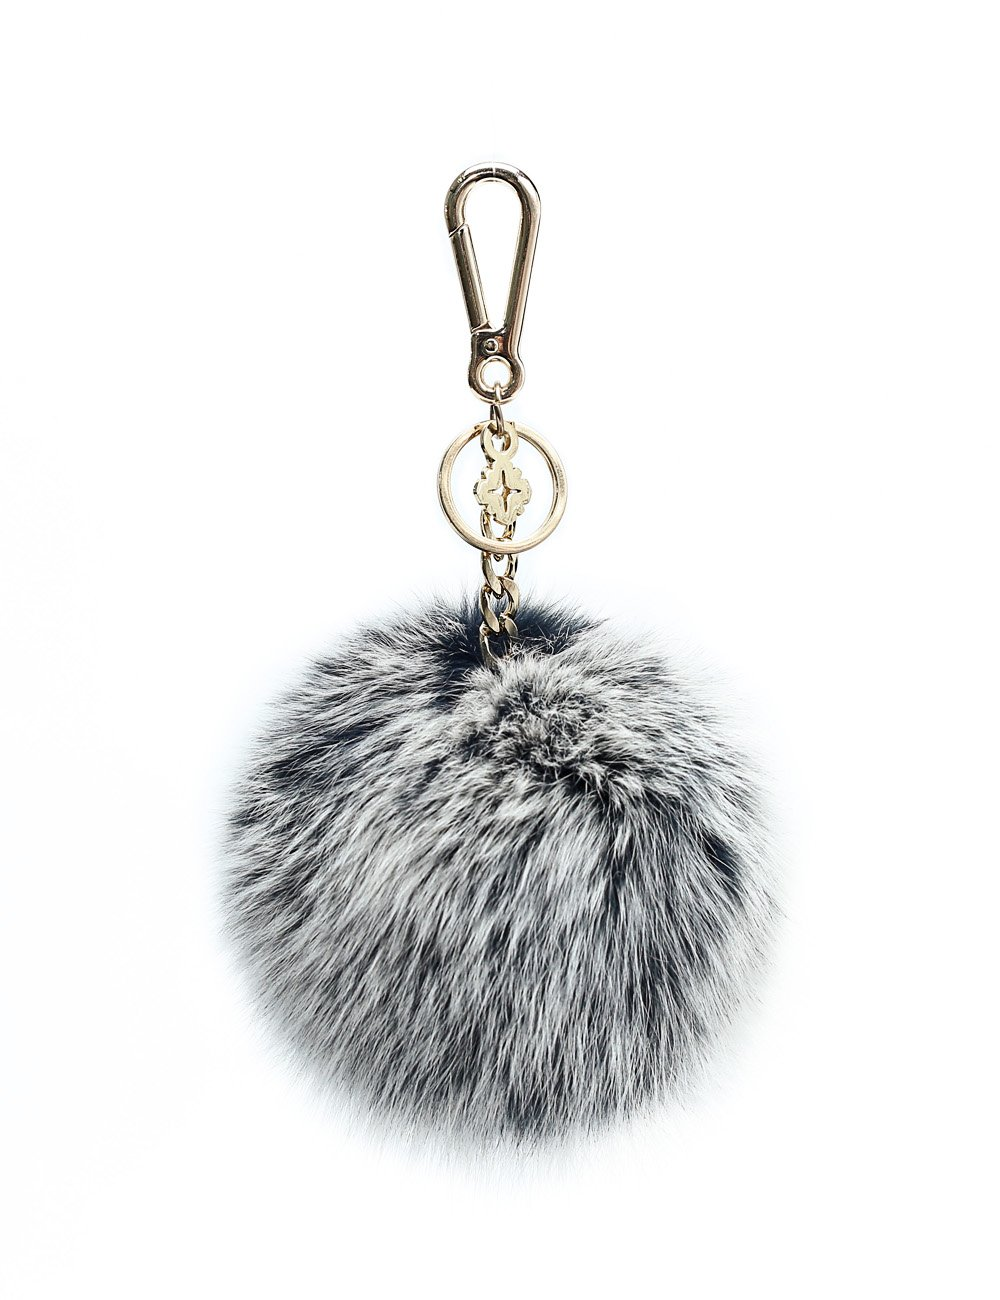 Pompom Keychain Puff Ball in Genuine Fox Fur by Miss Fong Bag Charm Gold Ring Fur Ball